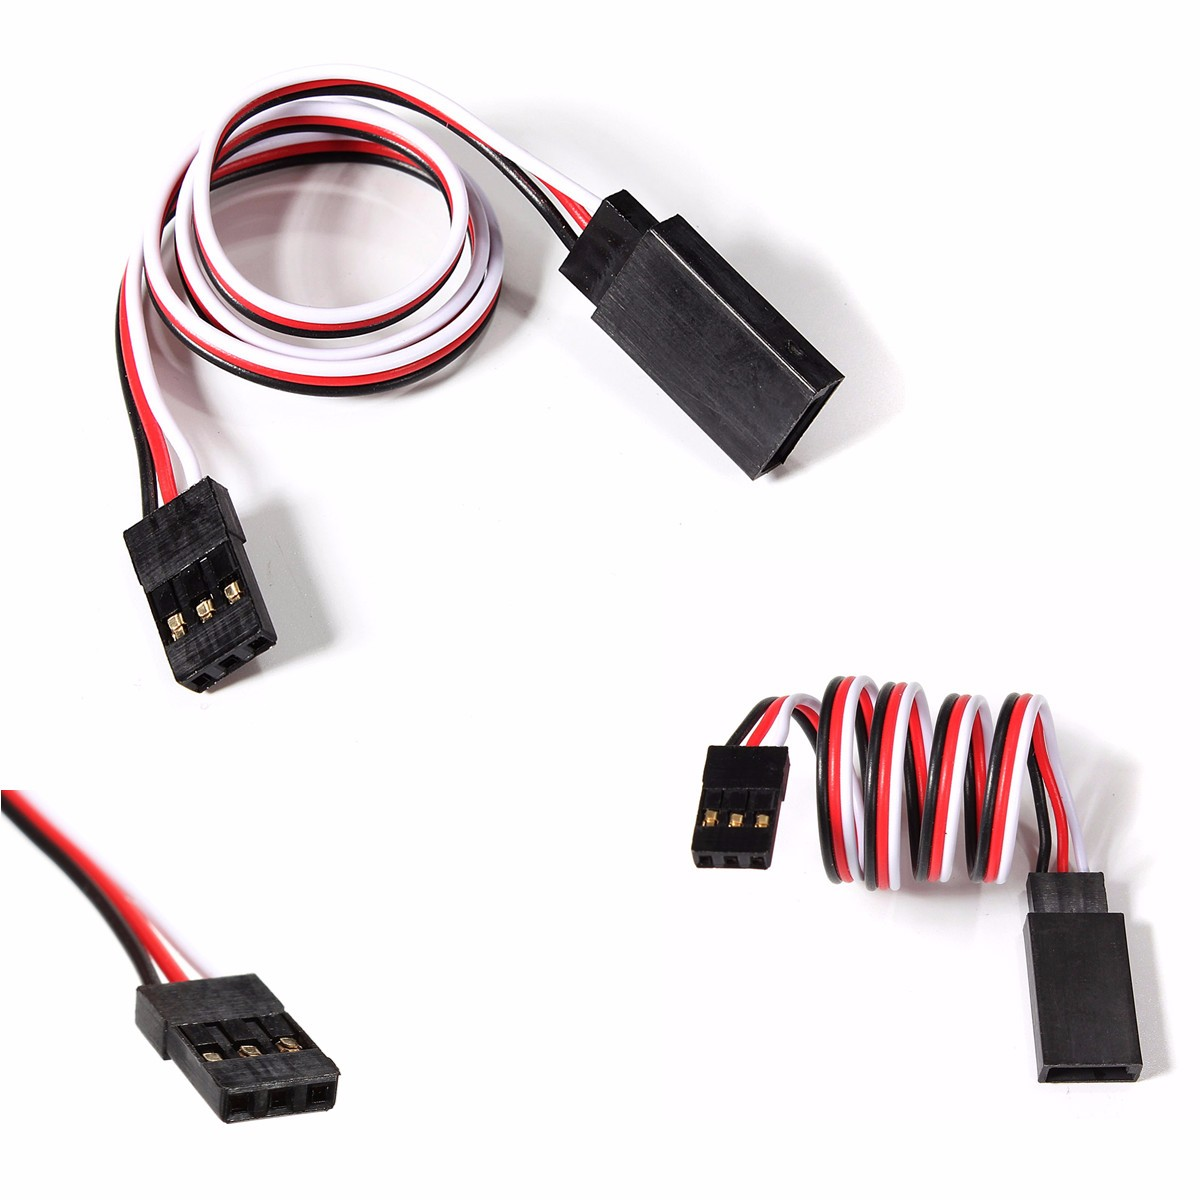 New 30cm RC Servo Extension Wire Cable For Futaba JR Remote Control Parts  Used for RC Car Plane Helicopter Servo Connection-in Parts & Accessories  from Toys ...